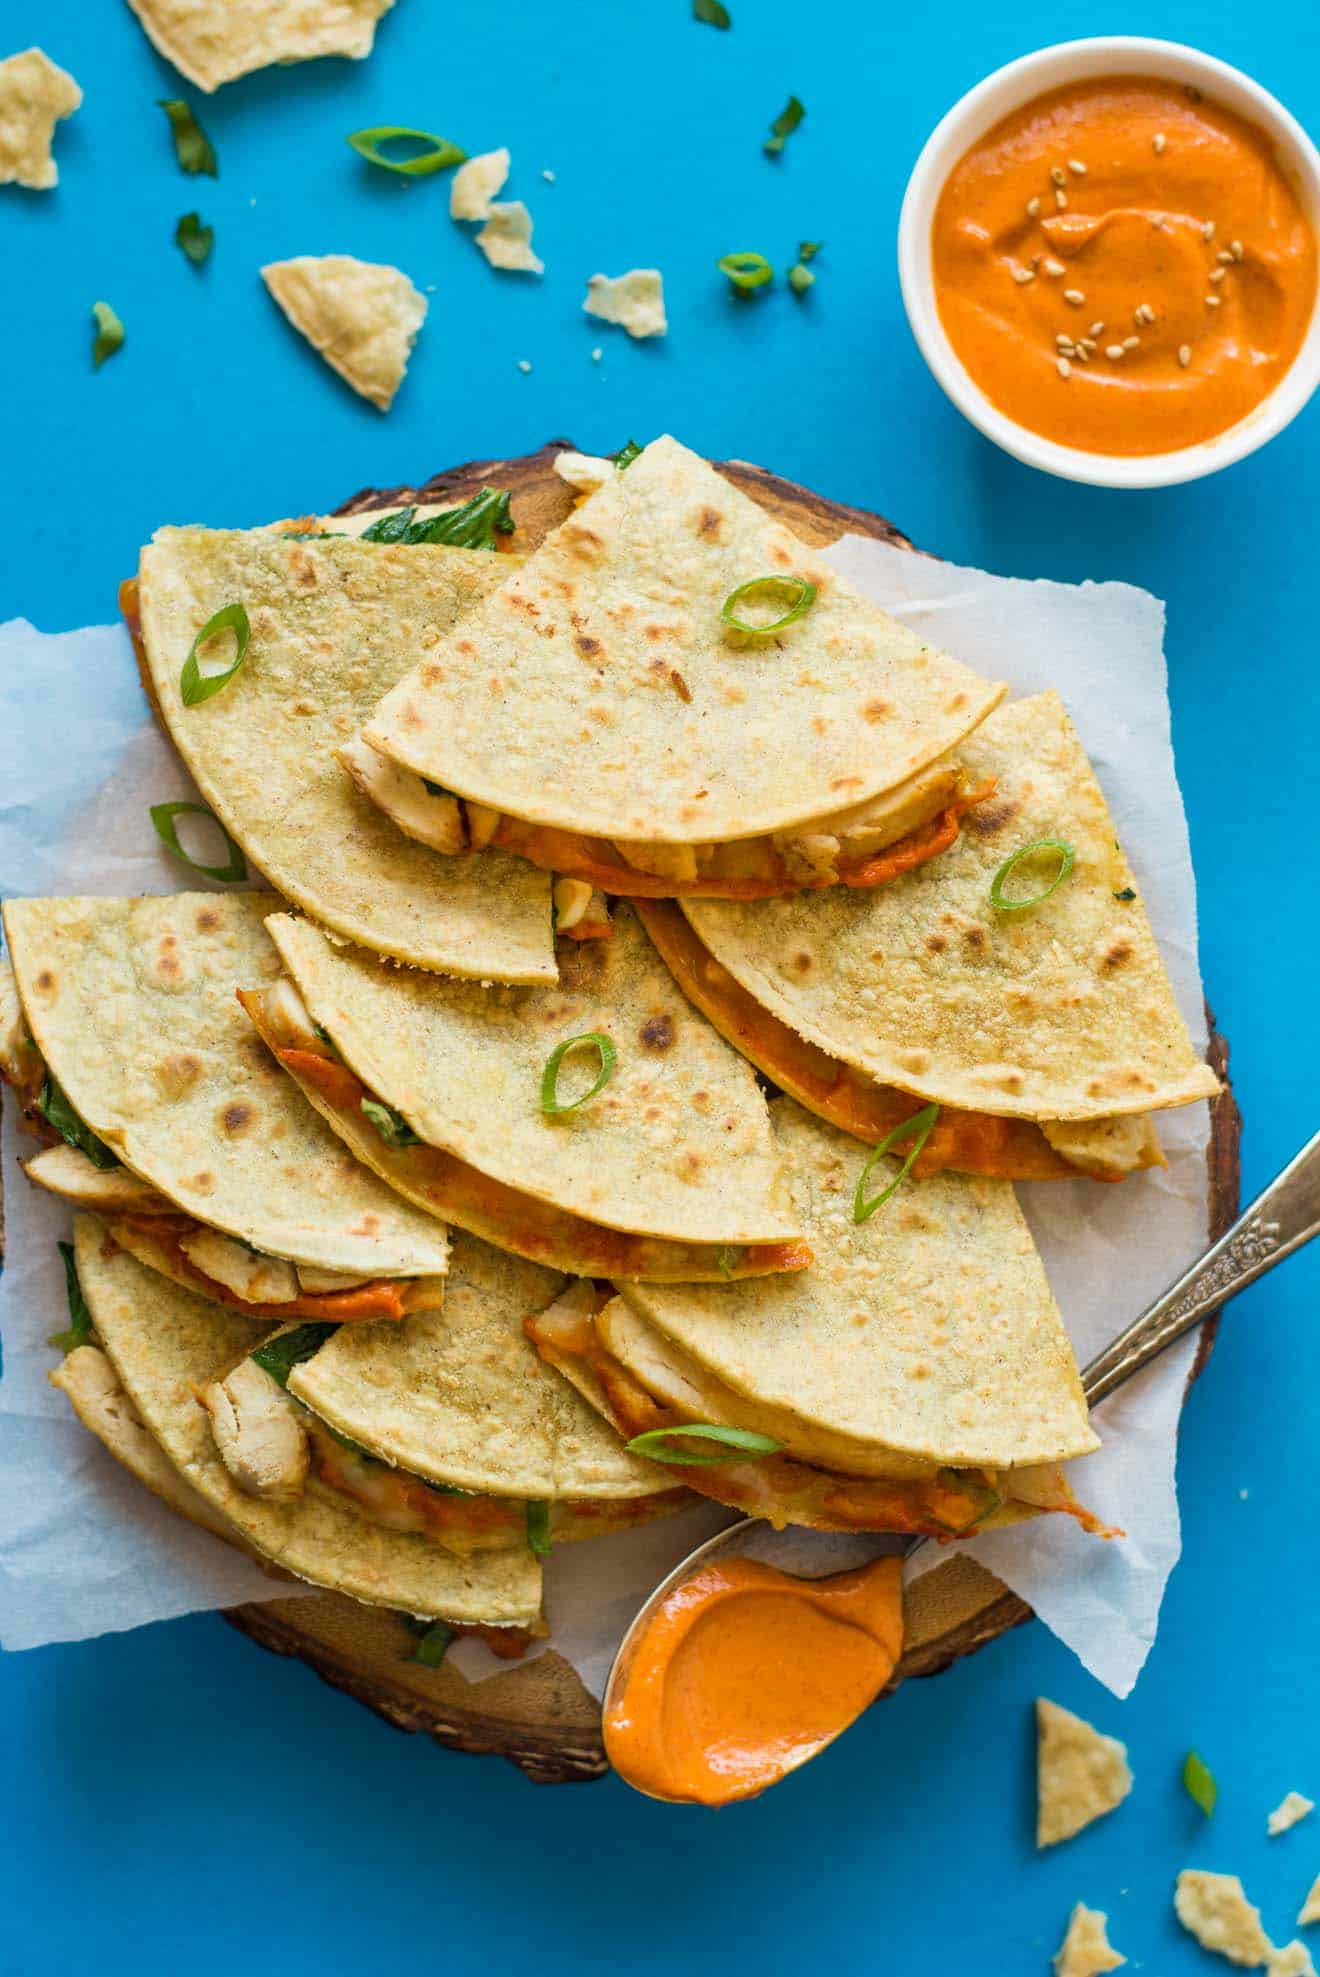 Chicken Quesadillas with Gochujang Sauce - easy gluten free meal in under 30 minutes!